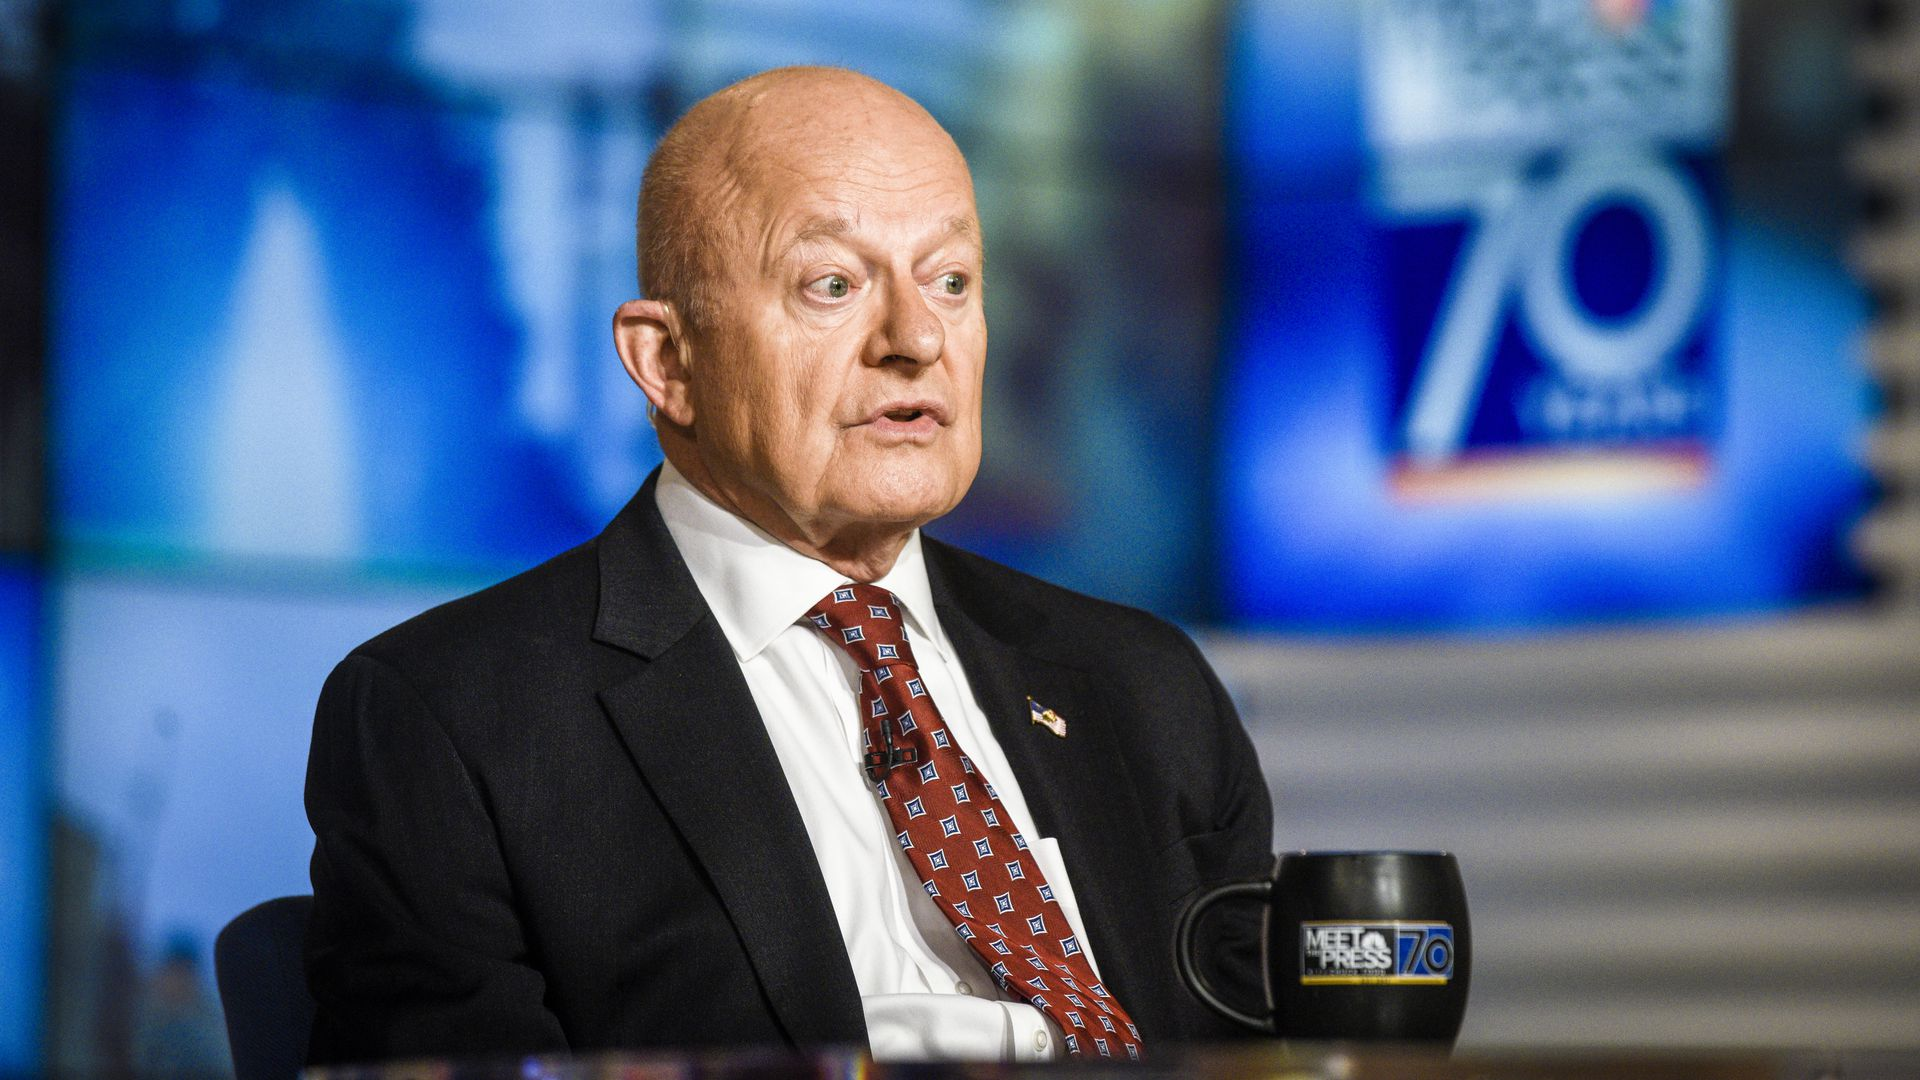 James Clapper sitting at a desk on a TV set with his eyes wide open